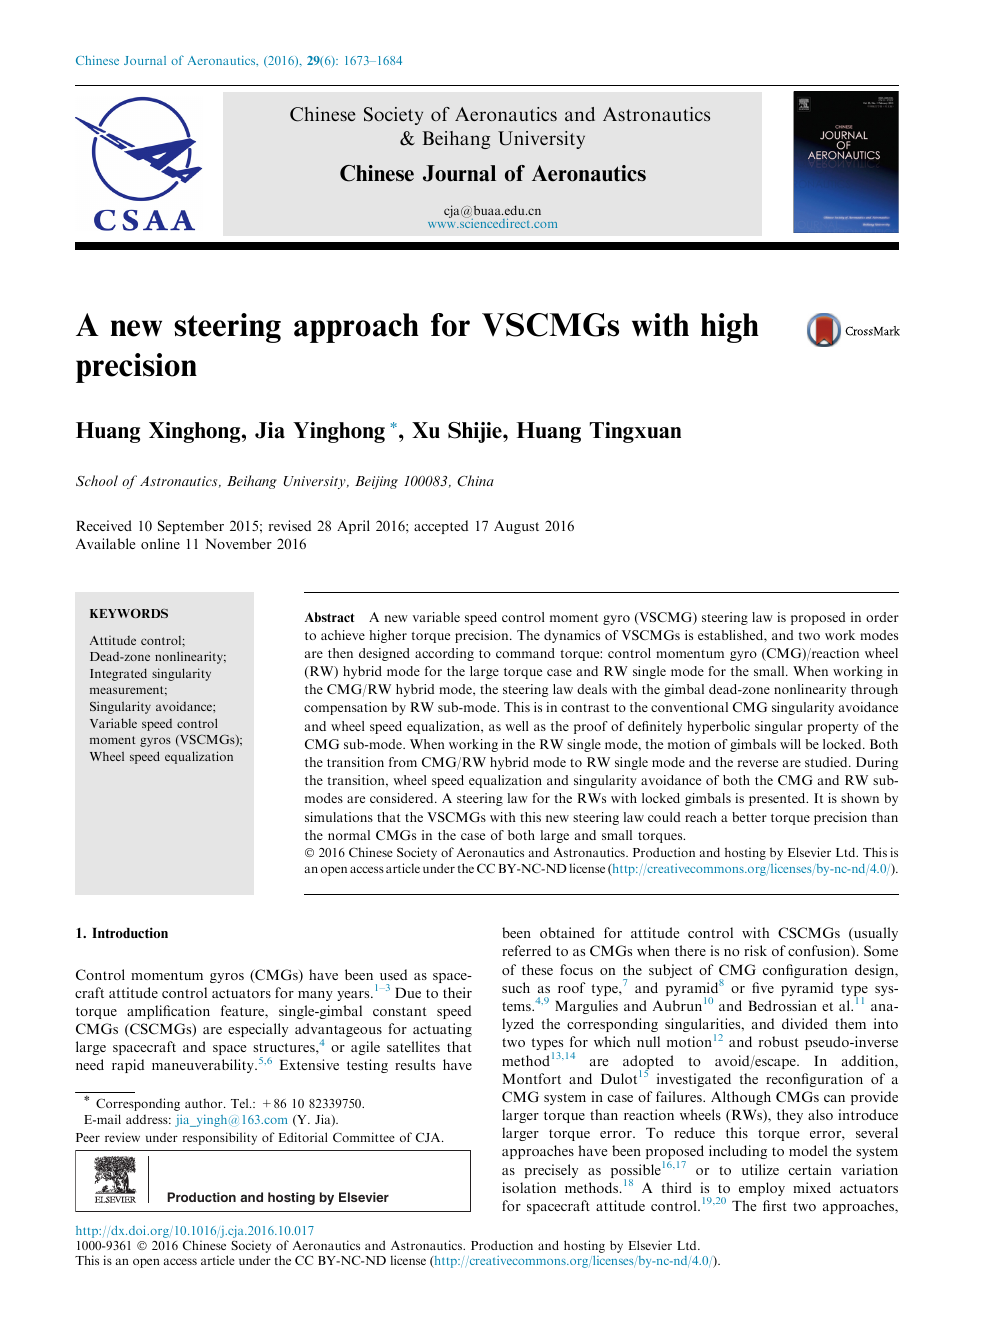 A new steering approach for VSCMGs with high precision